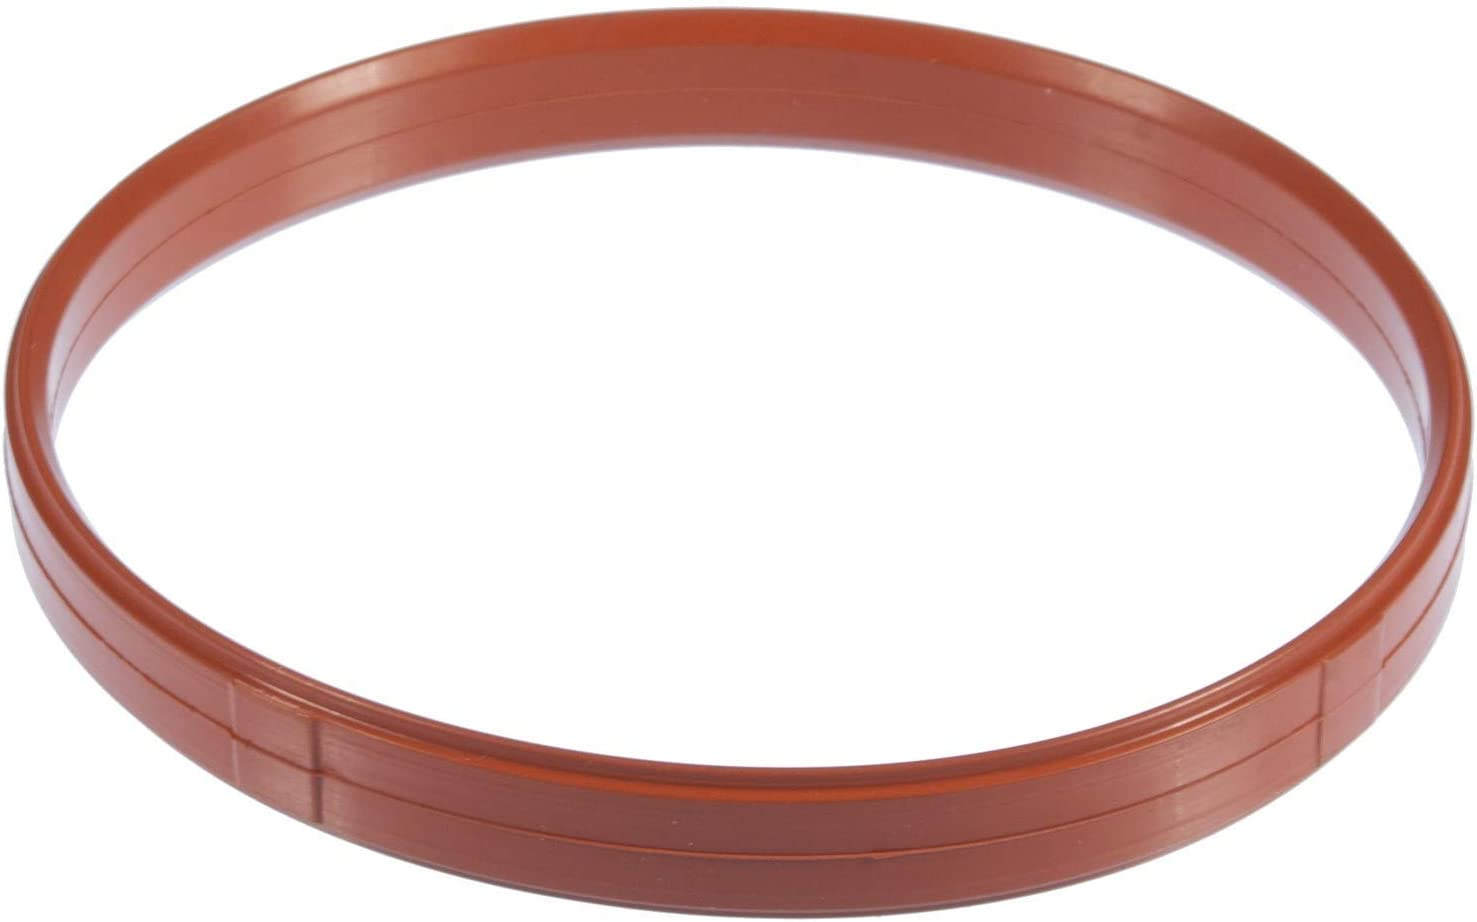 MAHLE Original G32503 Fuel Injection Throttle Body Mounting Gasket